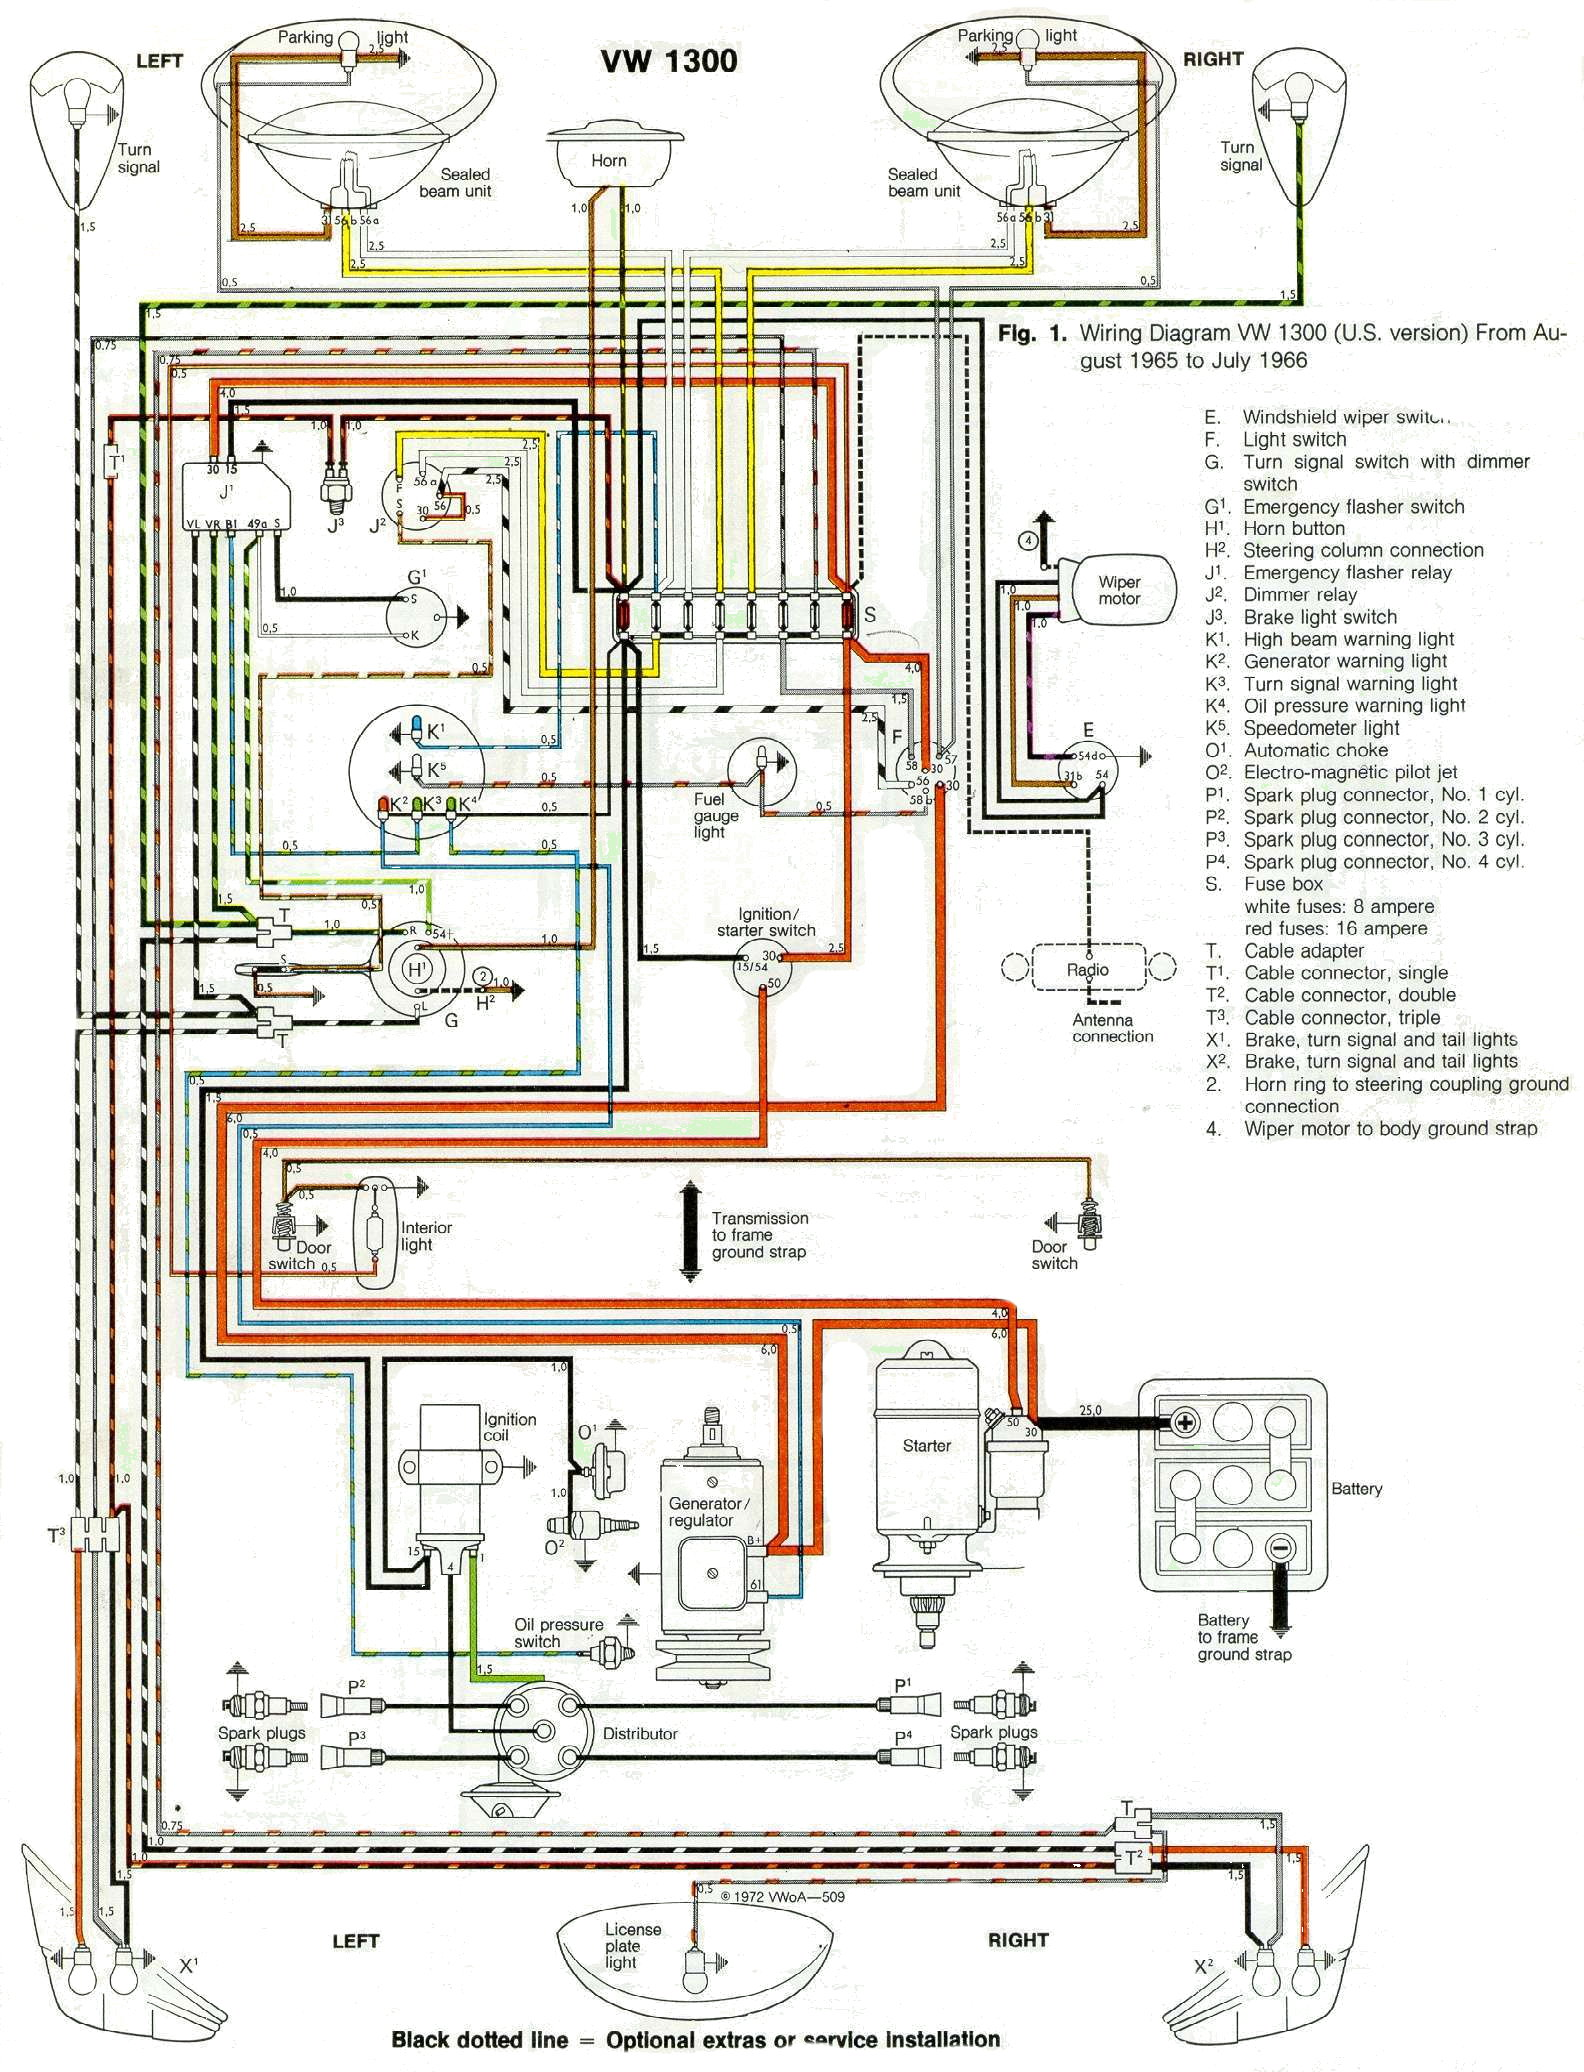 1966 wiring diagram rh 1966vwbeetle com vw wiring diagram alternator vw wiring diagram pdf